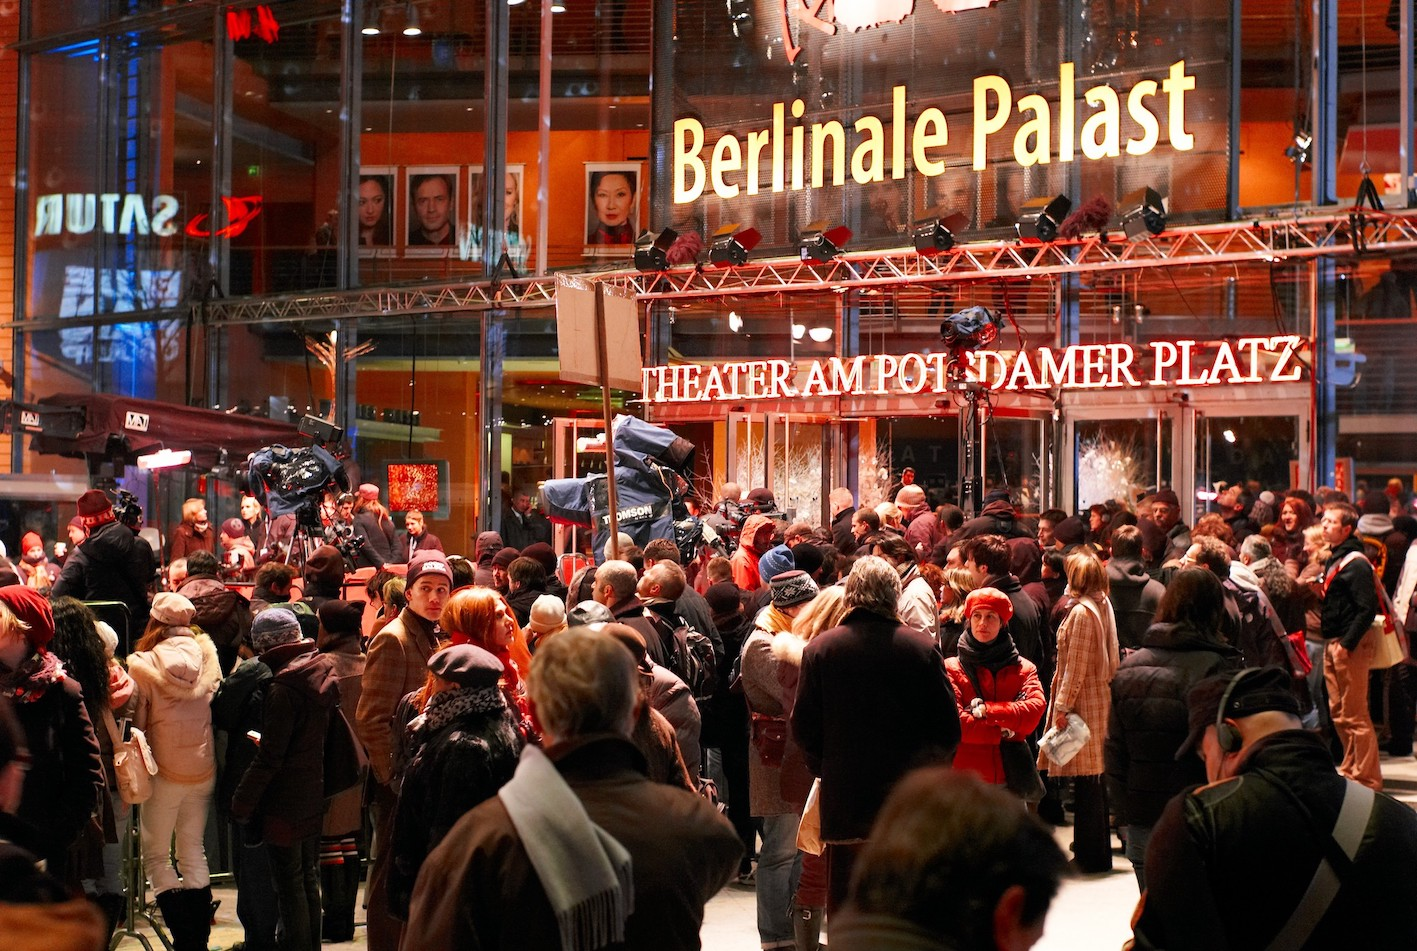 2019 Berlinale Come Berlinale 2019 Sarà Artribune xnYC7qvn